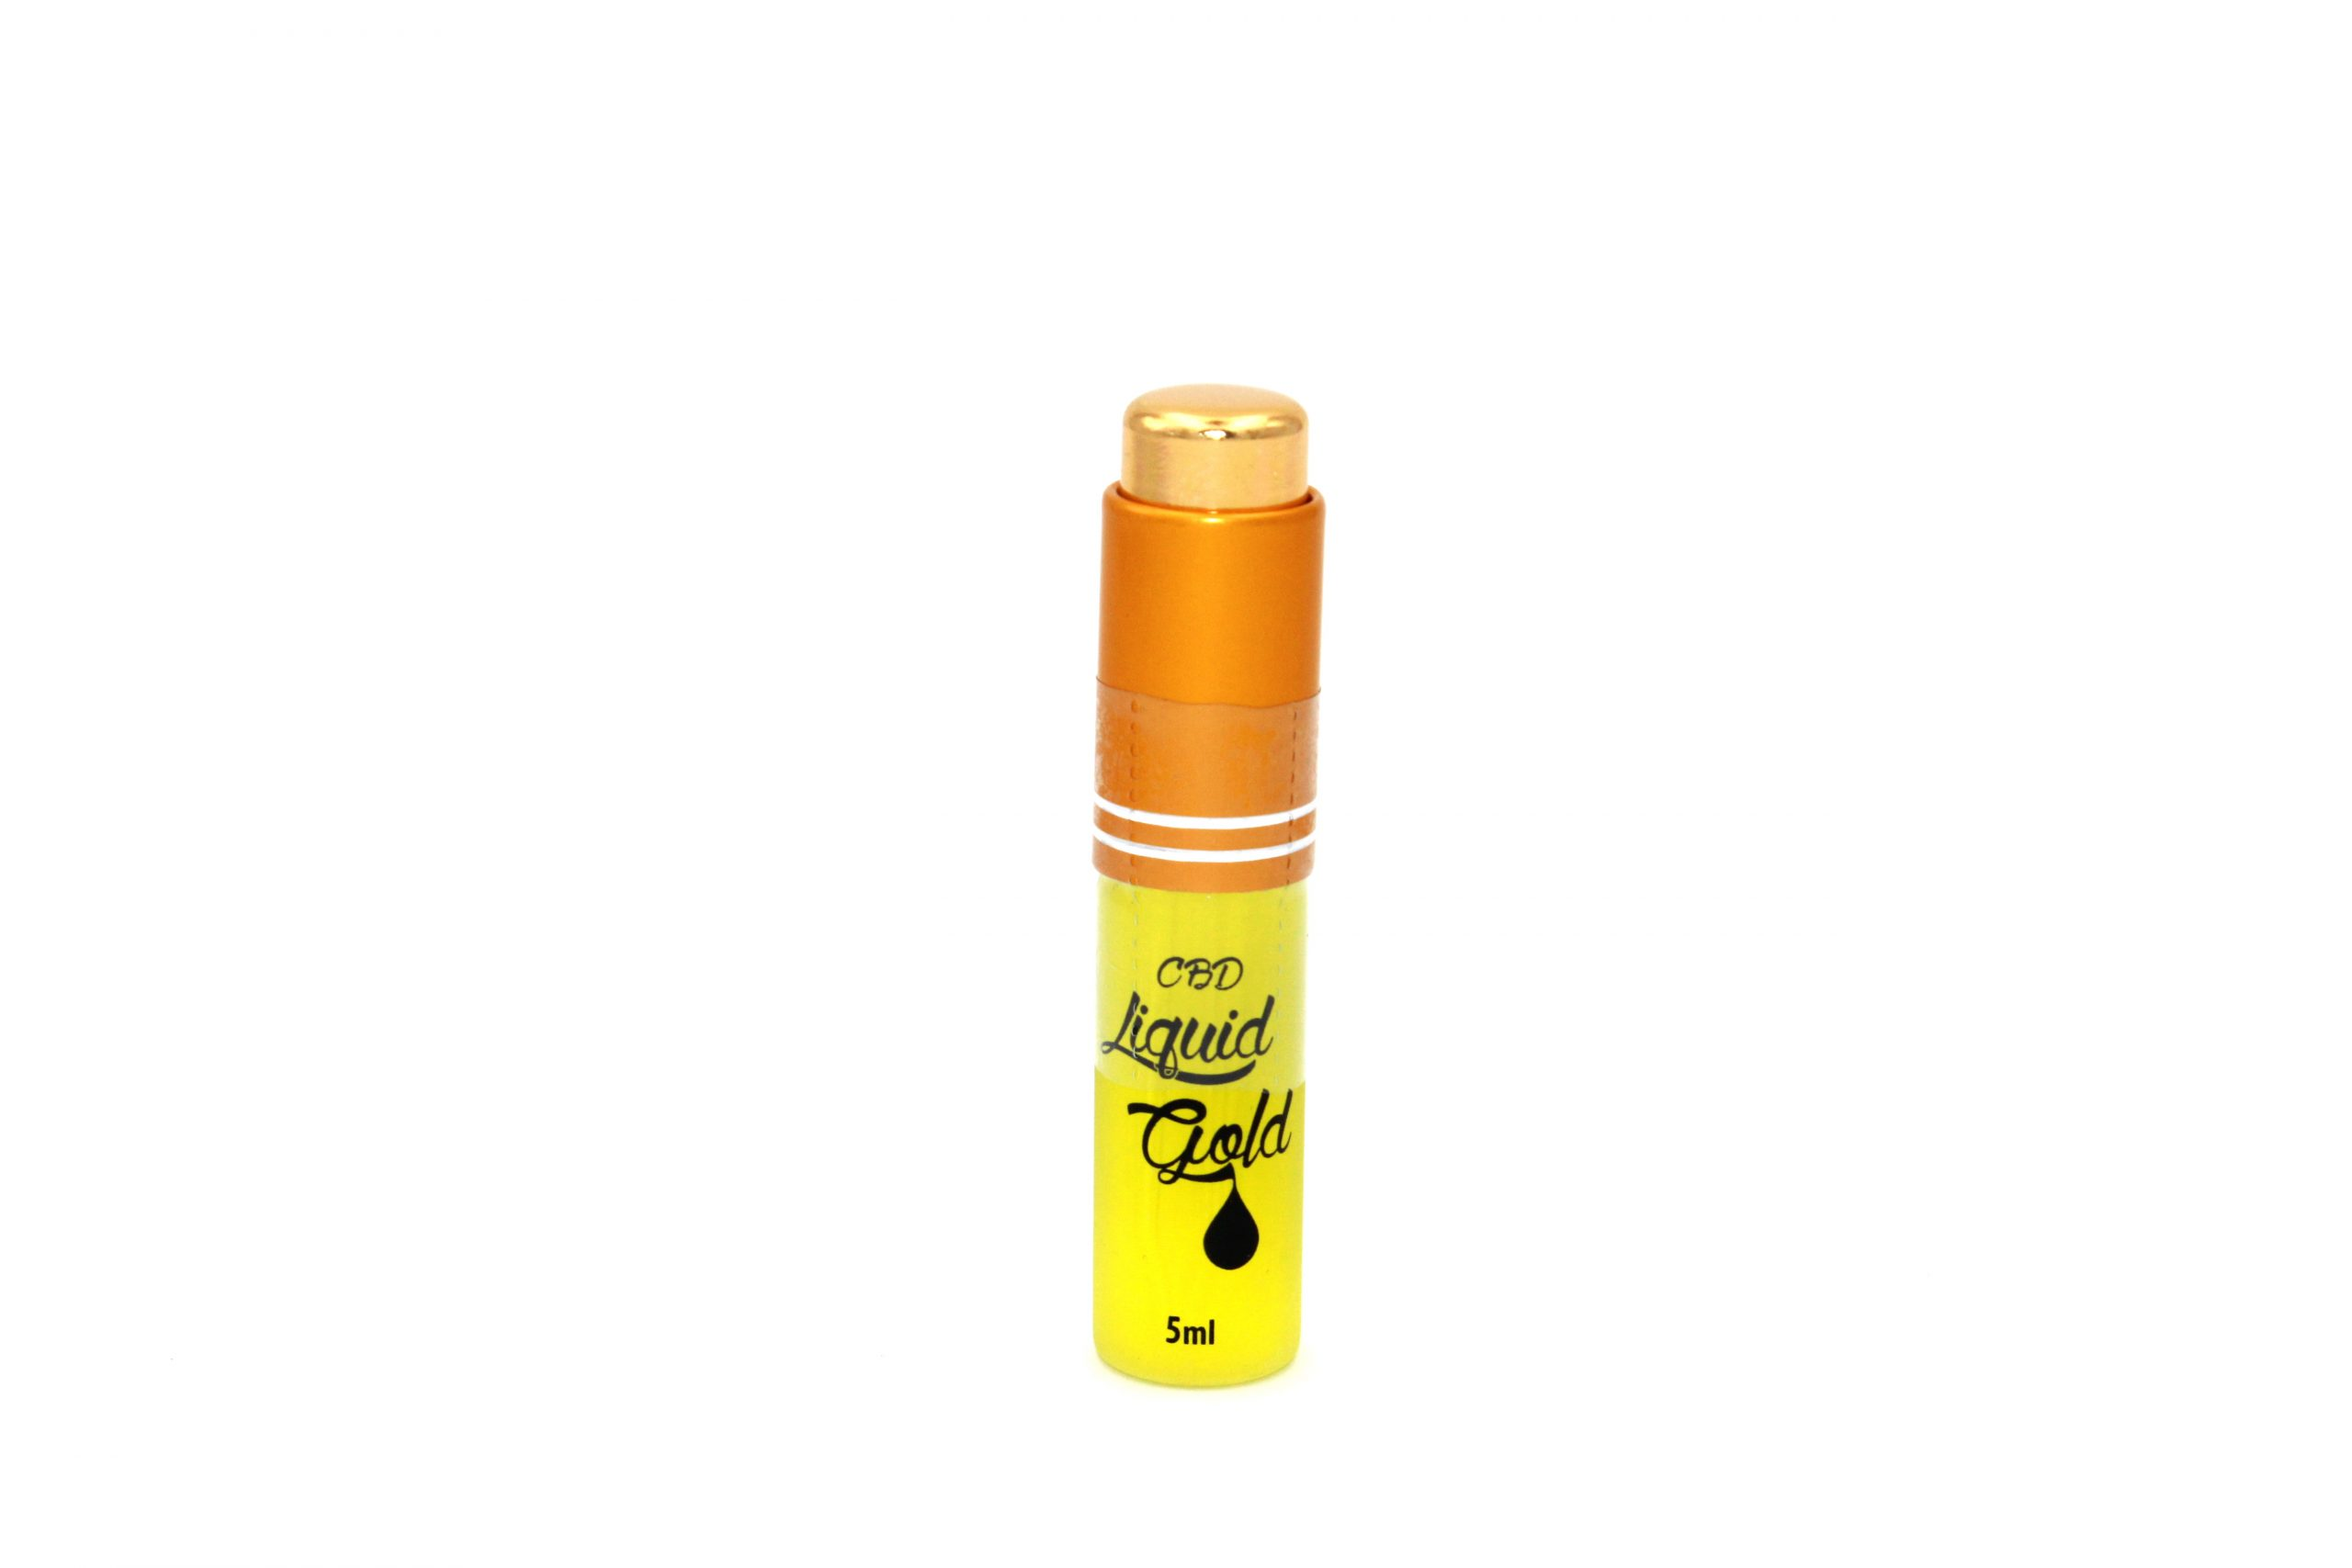 CBD Liquid Gold 18K SUPER CONCENTRATED E-LIQUID - 5ml